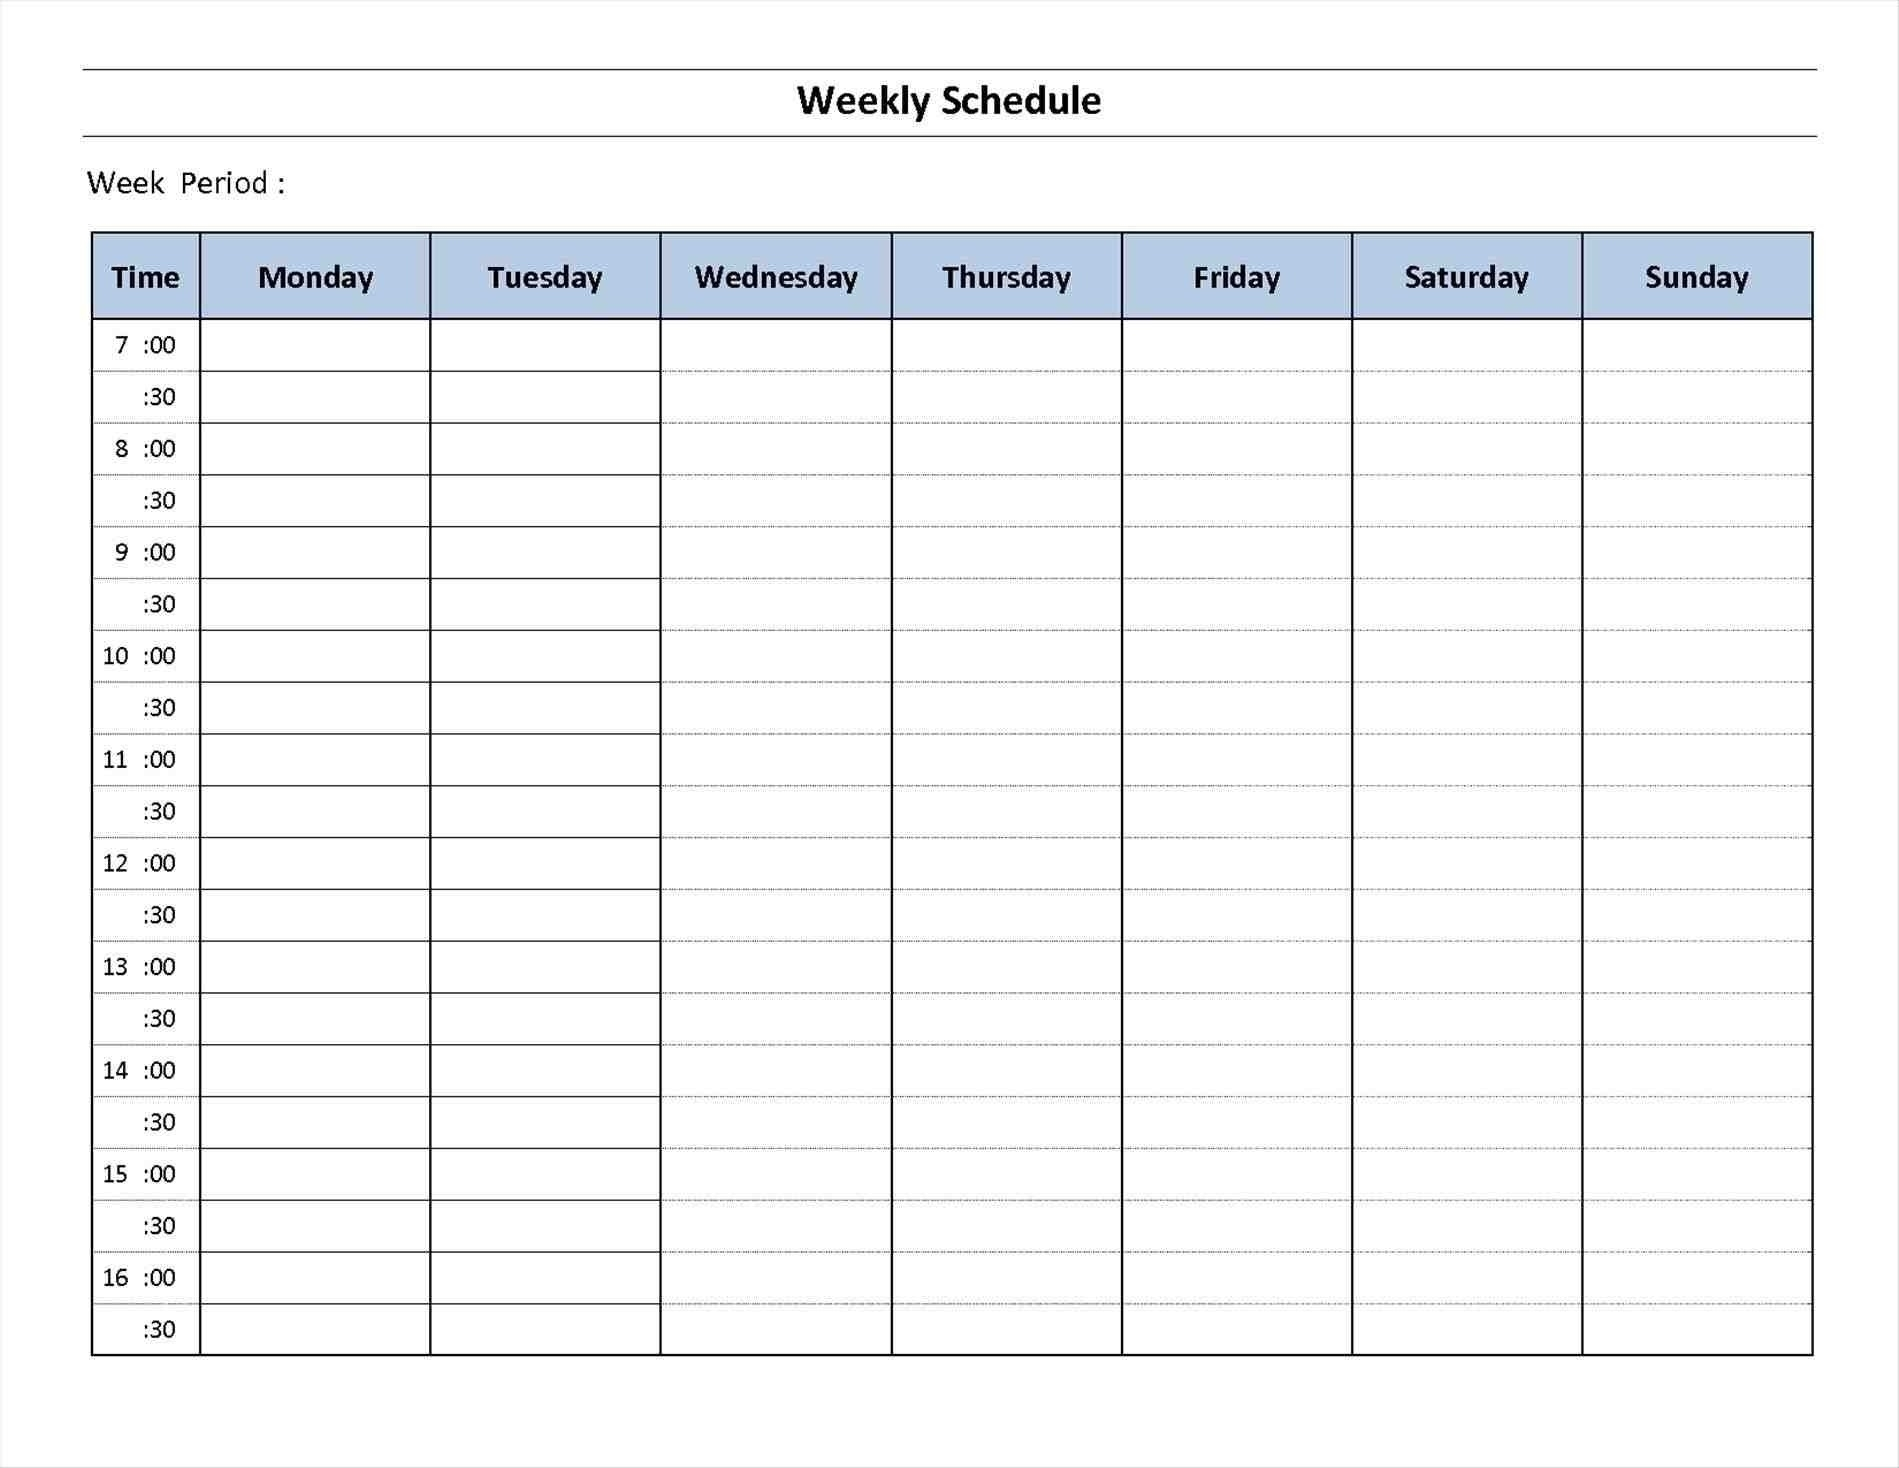 Schedule Template Ay Planner Week Calendar Printable Excel Word Free in 7 Day Week Free Schedule Template